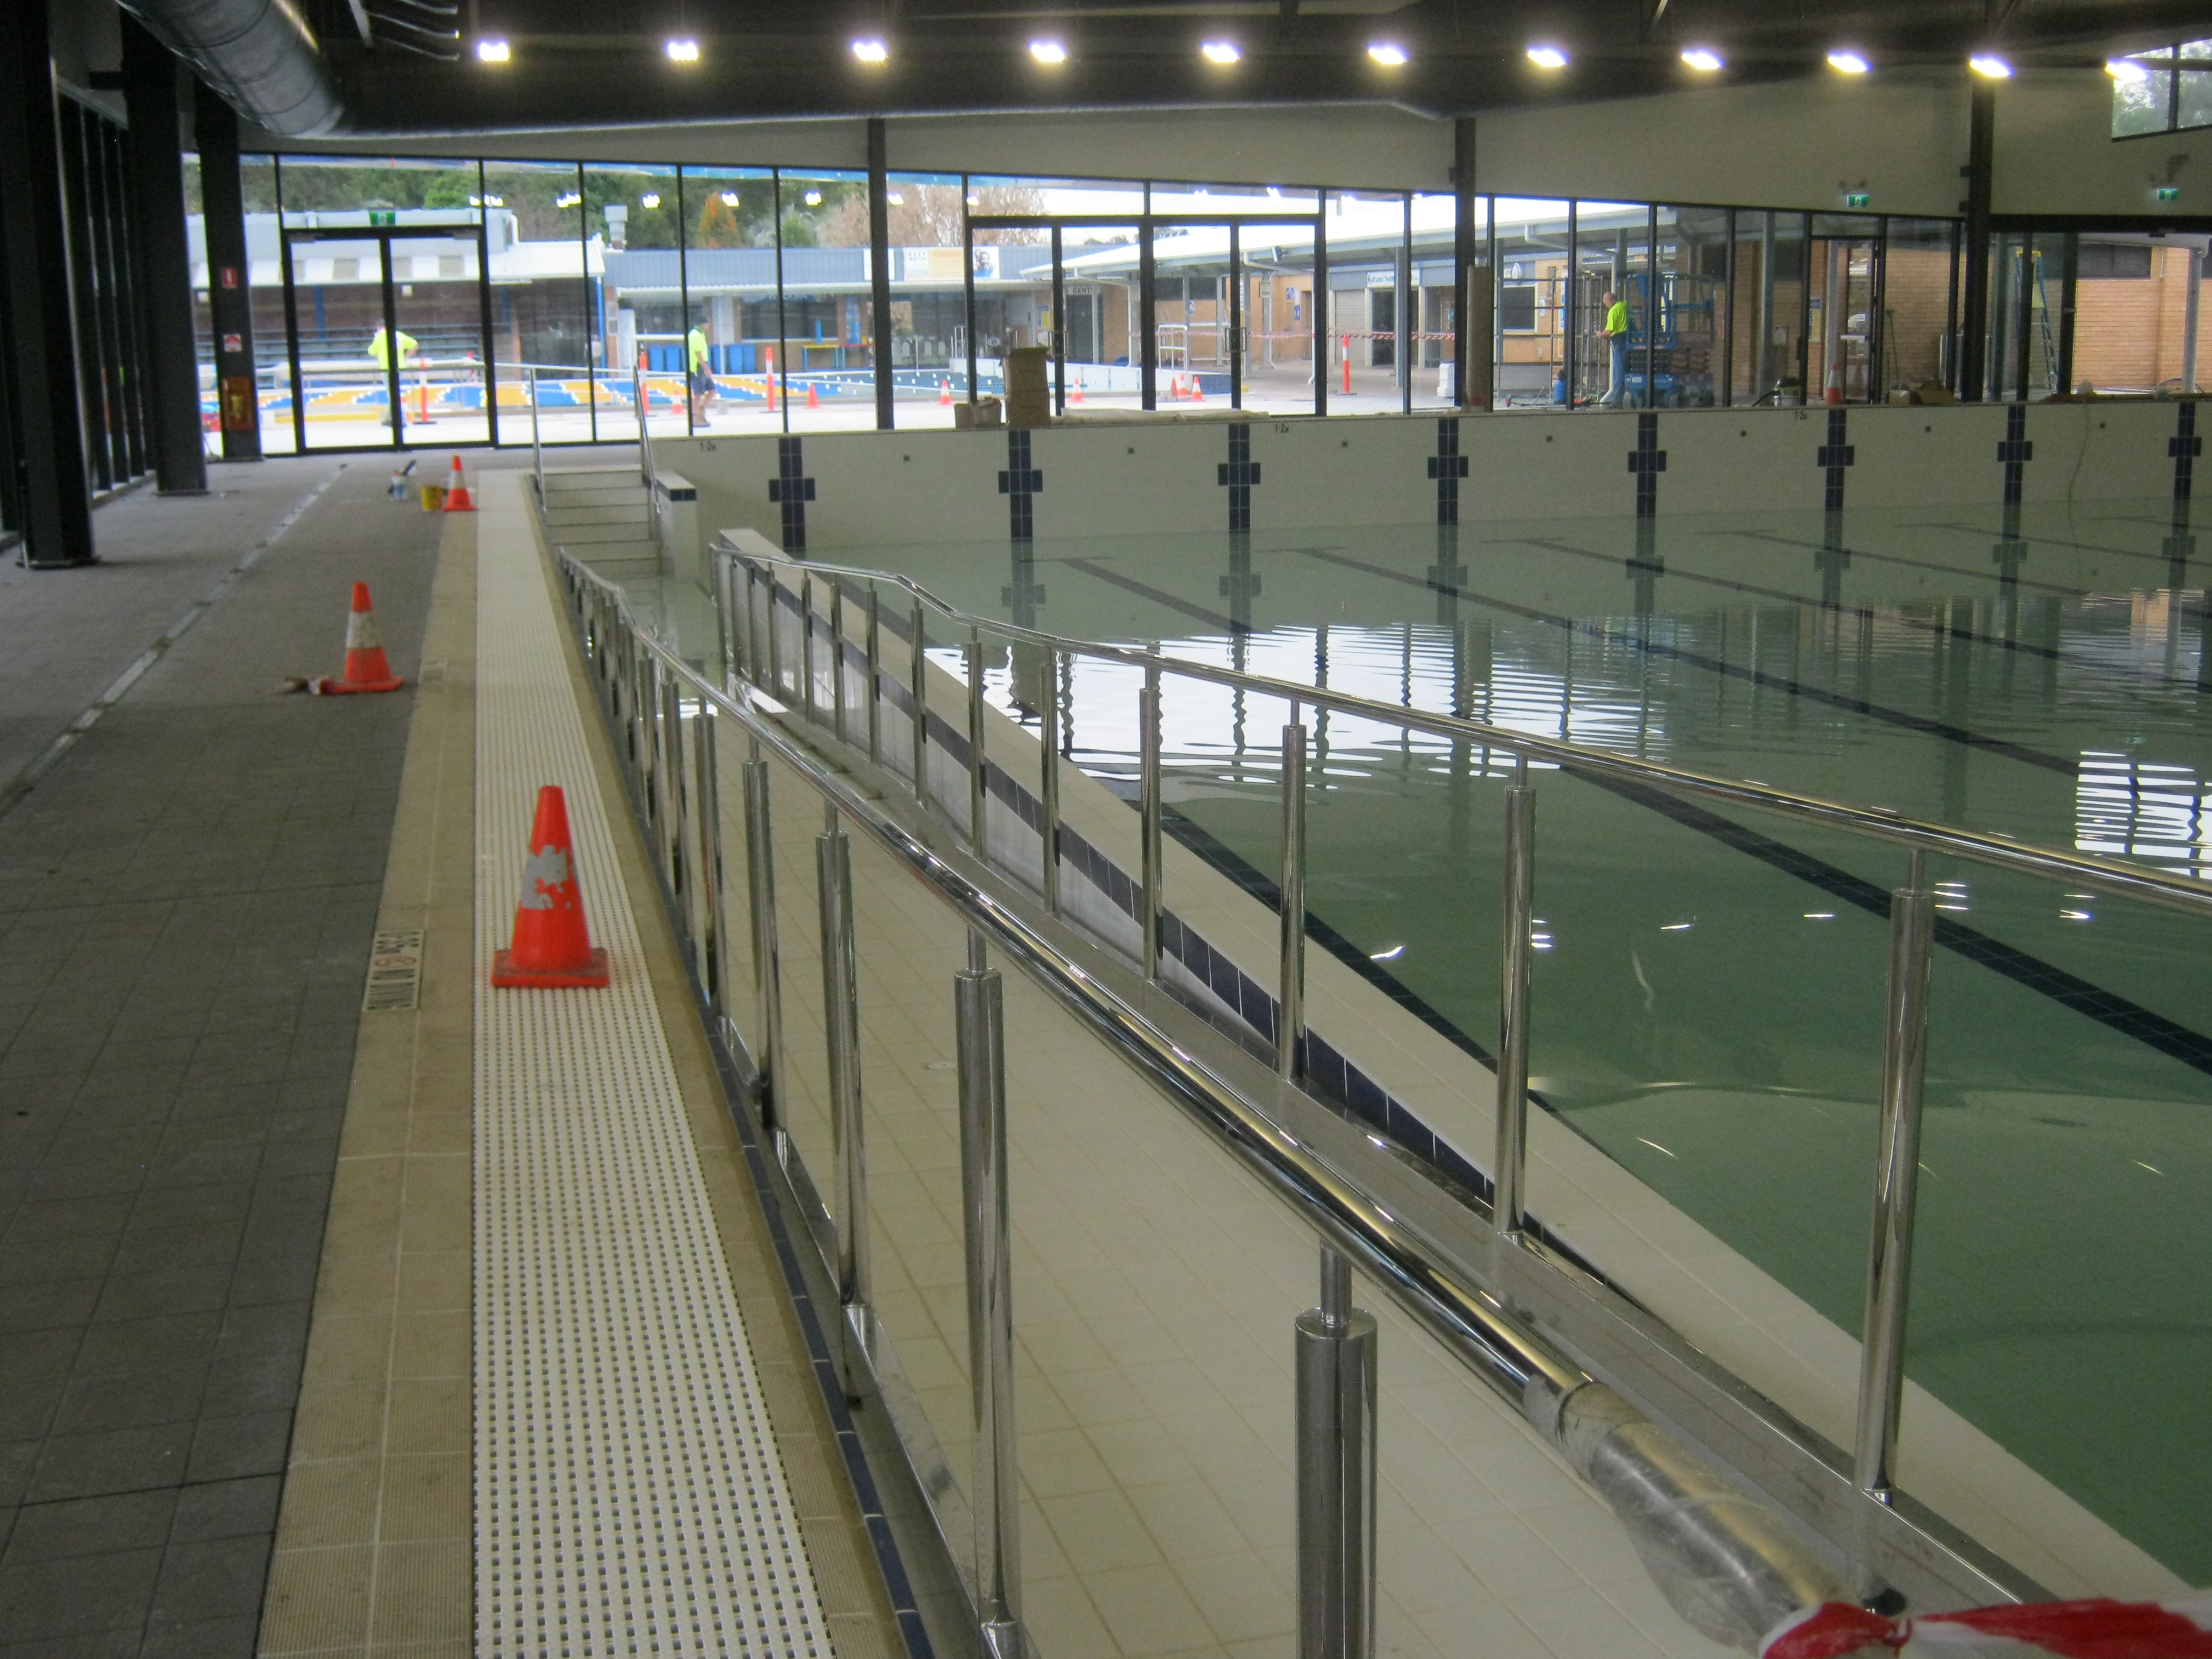 Maitland Heated Pool Ramp Access ss grabrails